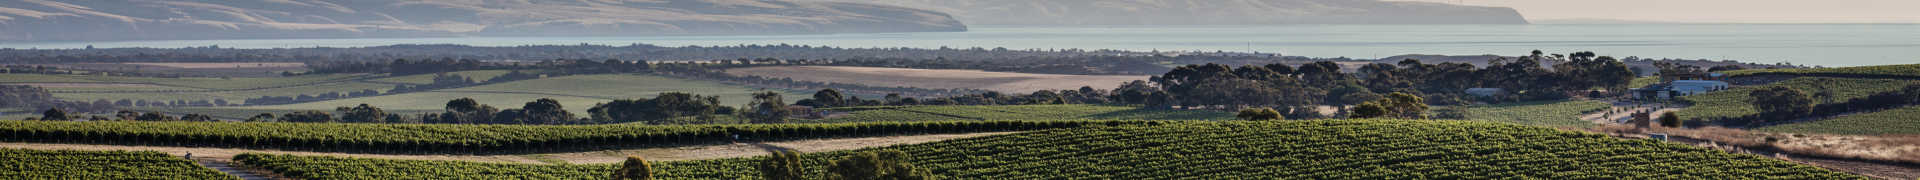 Image for South Australian Wine Australia content section